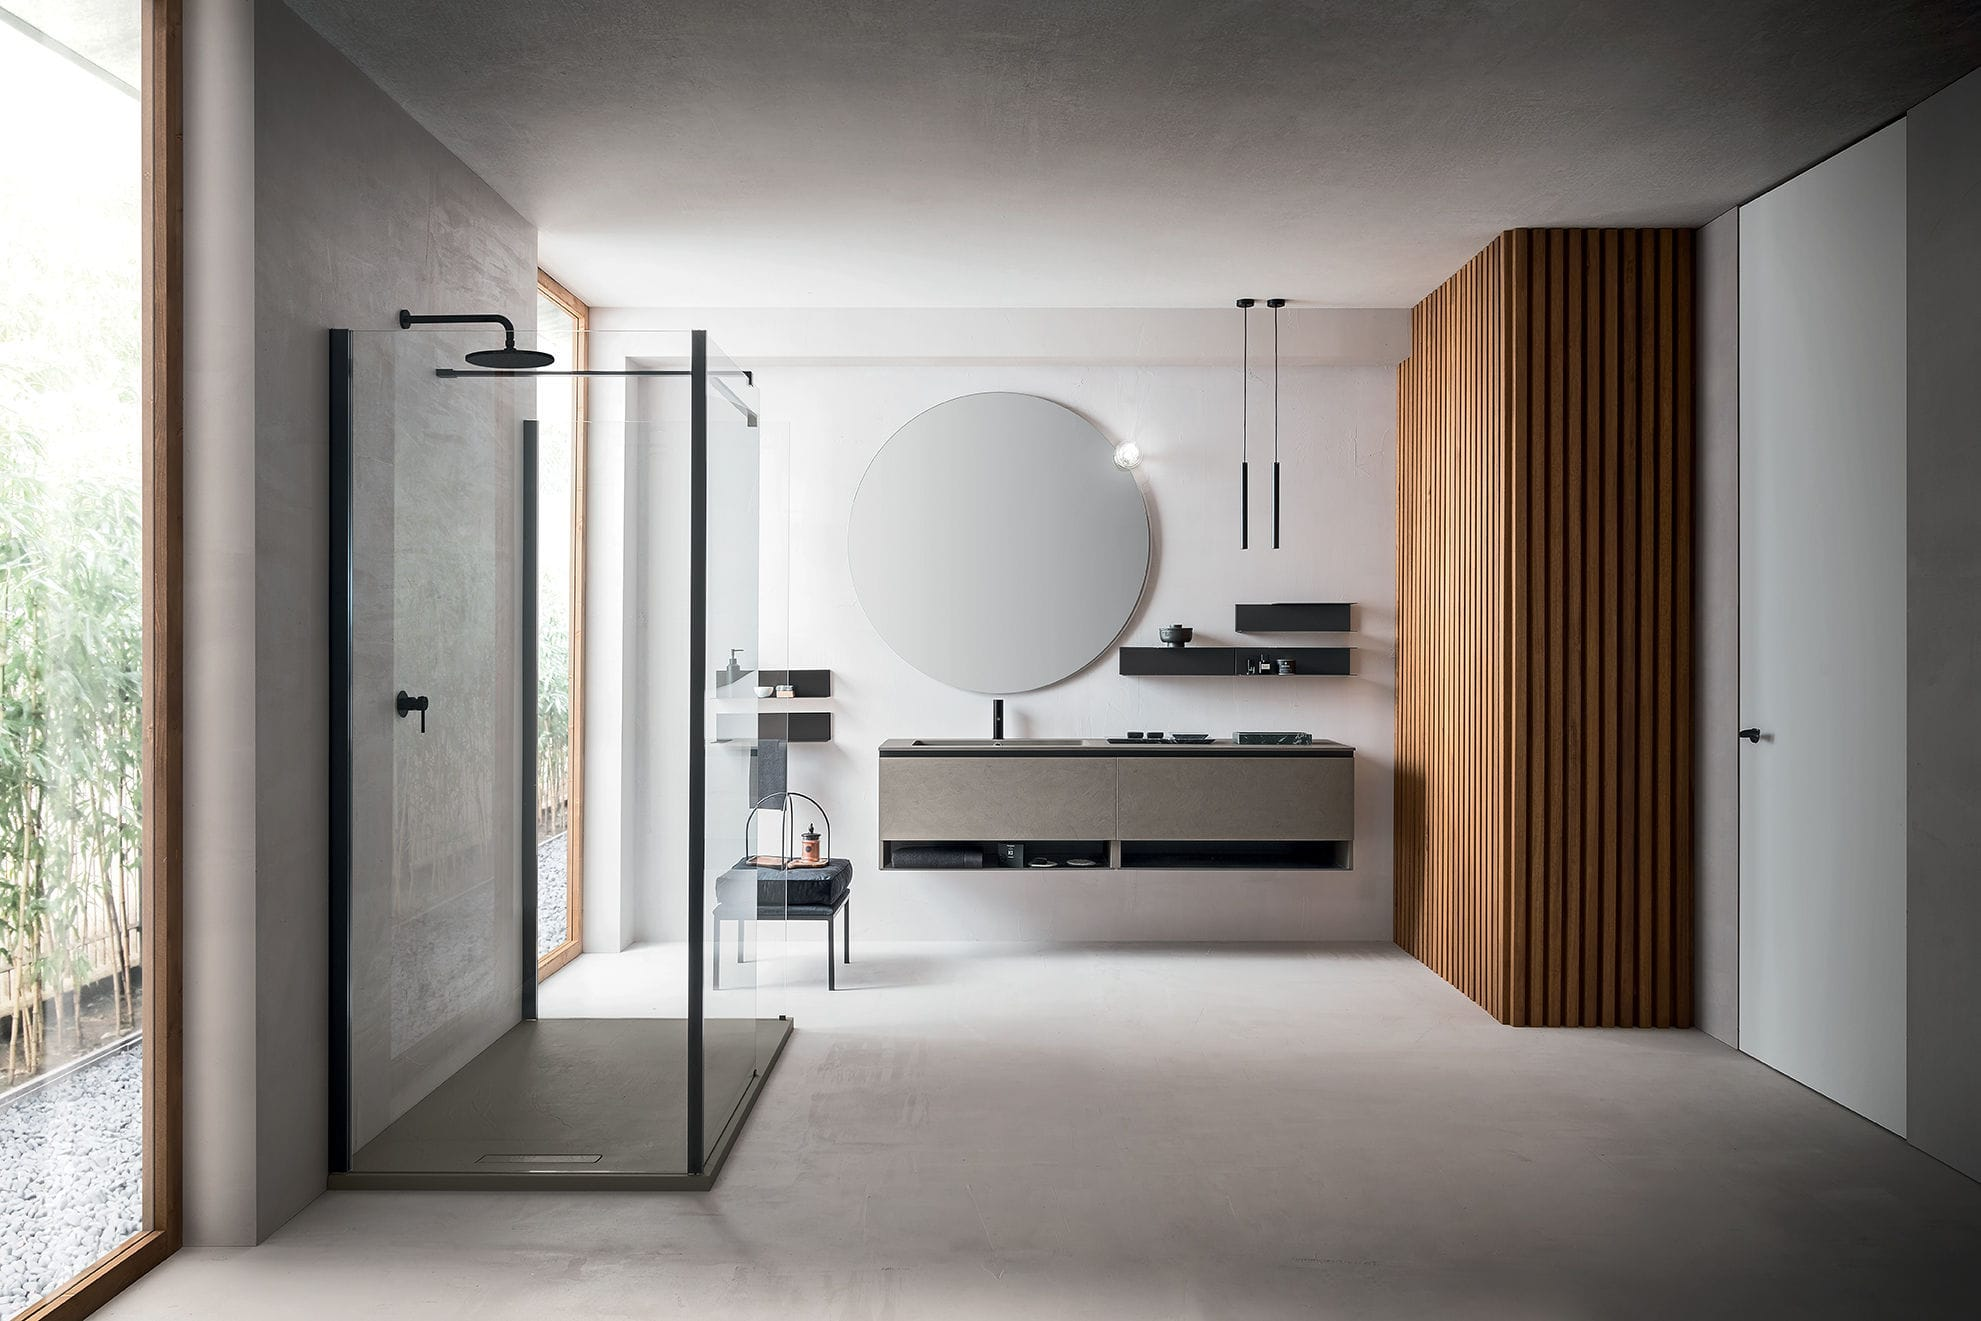 Double washbasin cabinet / wall-hung / wooden / glass